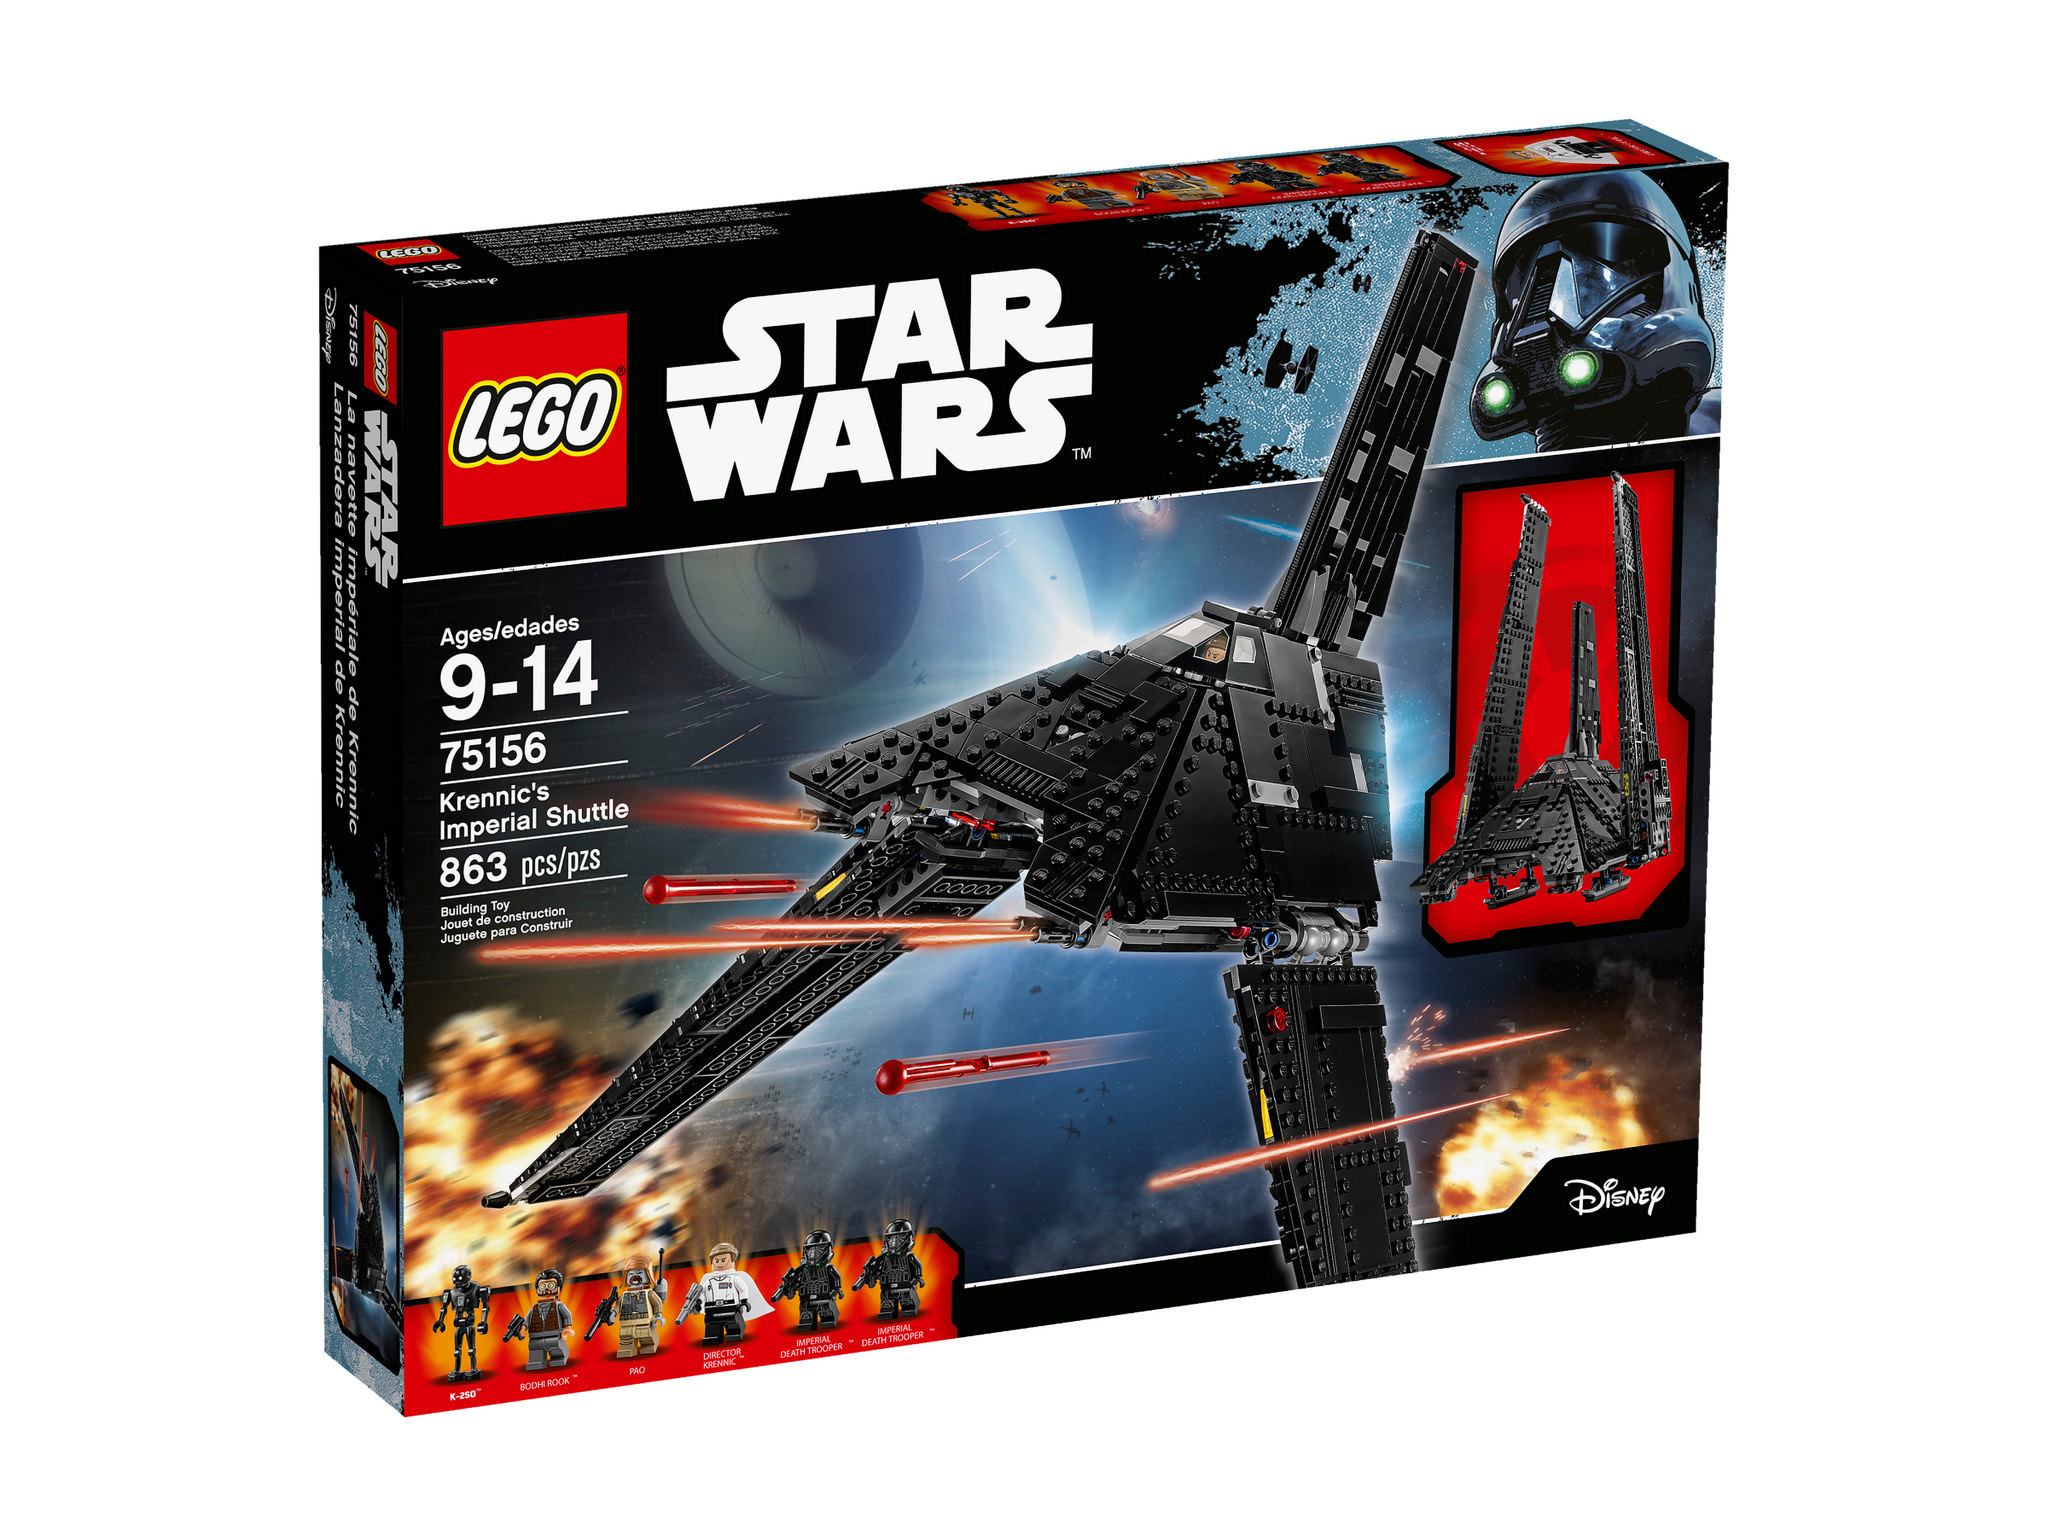 LEGO Star Wars 75156 - Krennic's Imperial Shuttle